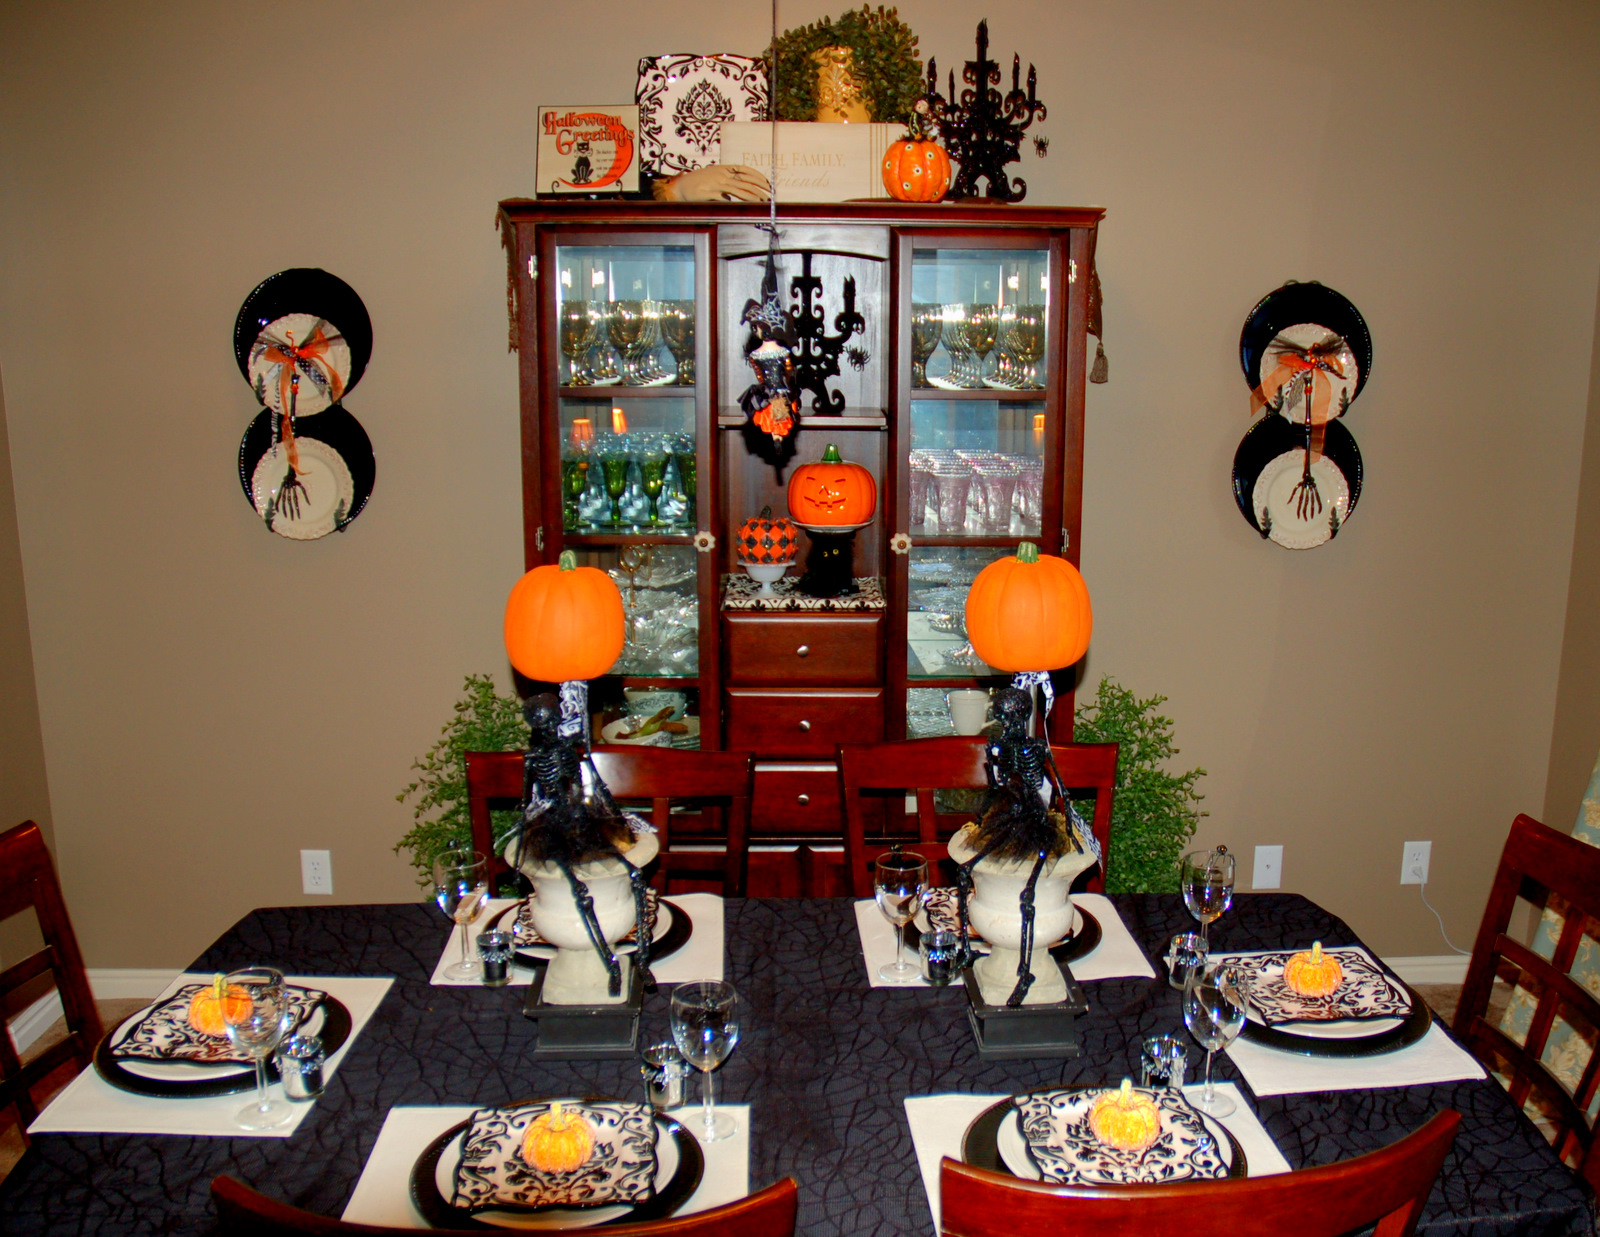 Coolly Modern Formal Dining Room Sets To Consider Getting: Dining Room Ideas: 2011-10-02